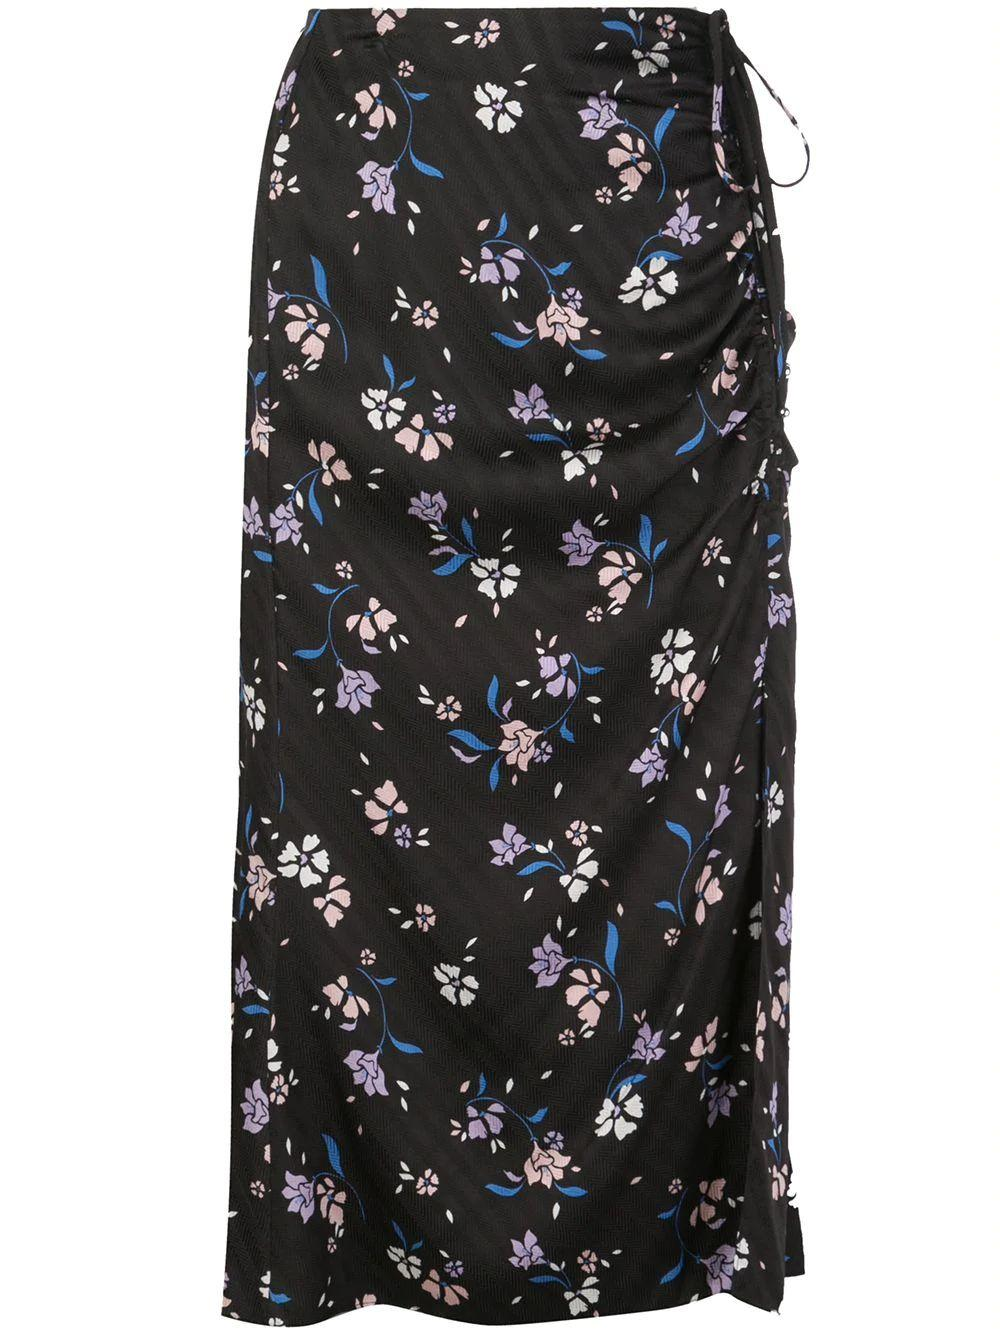 Vanity Midi Skirt Item # 2003JQ0143238